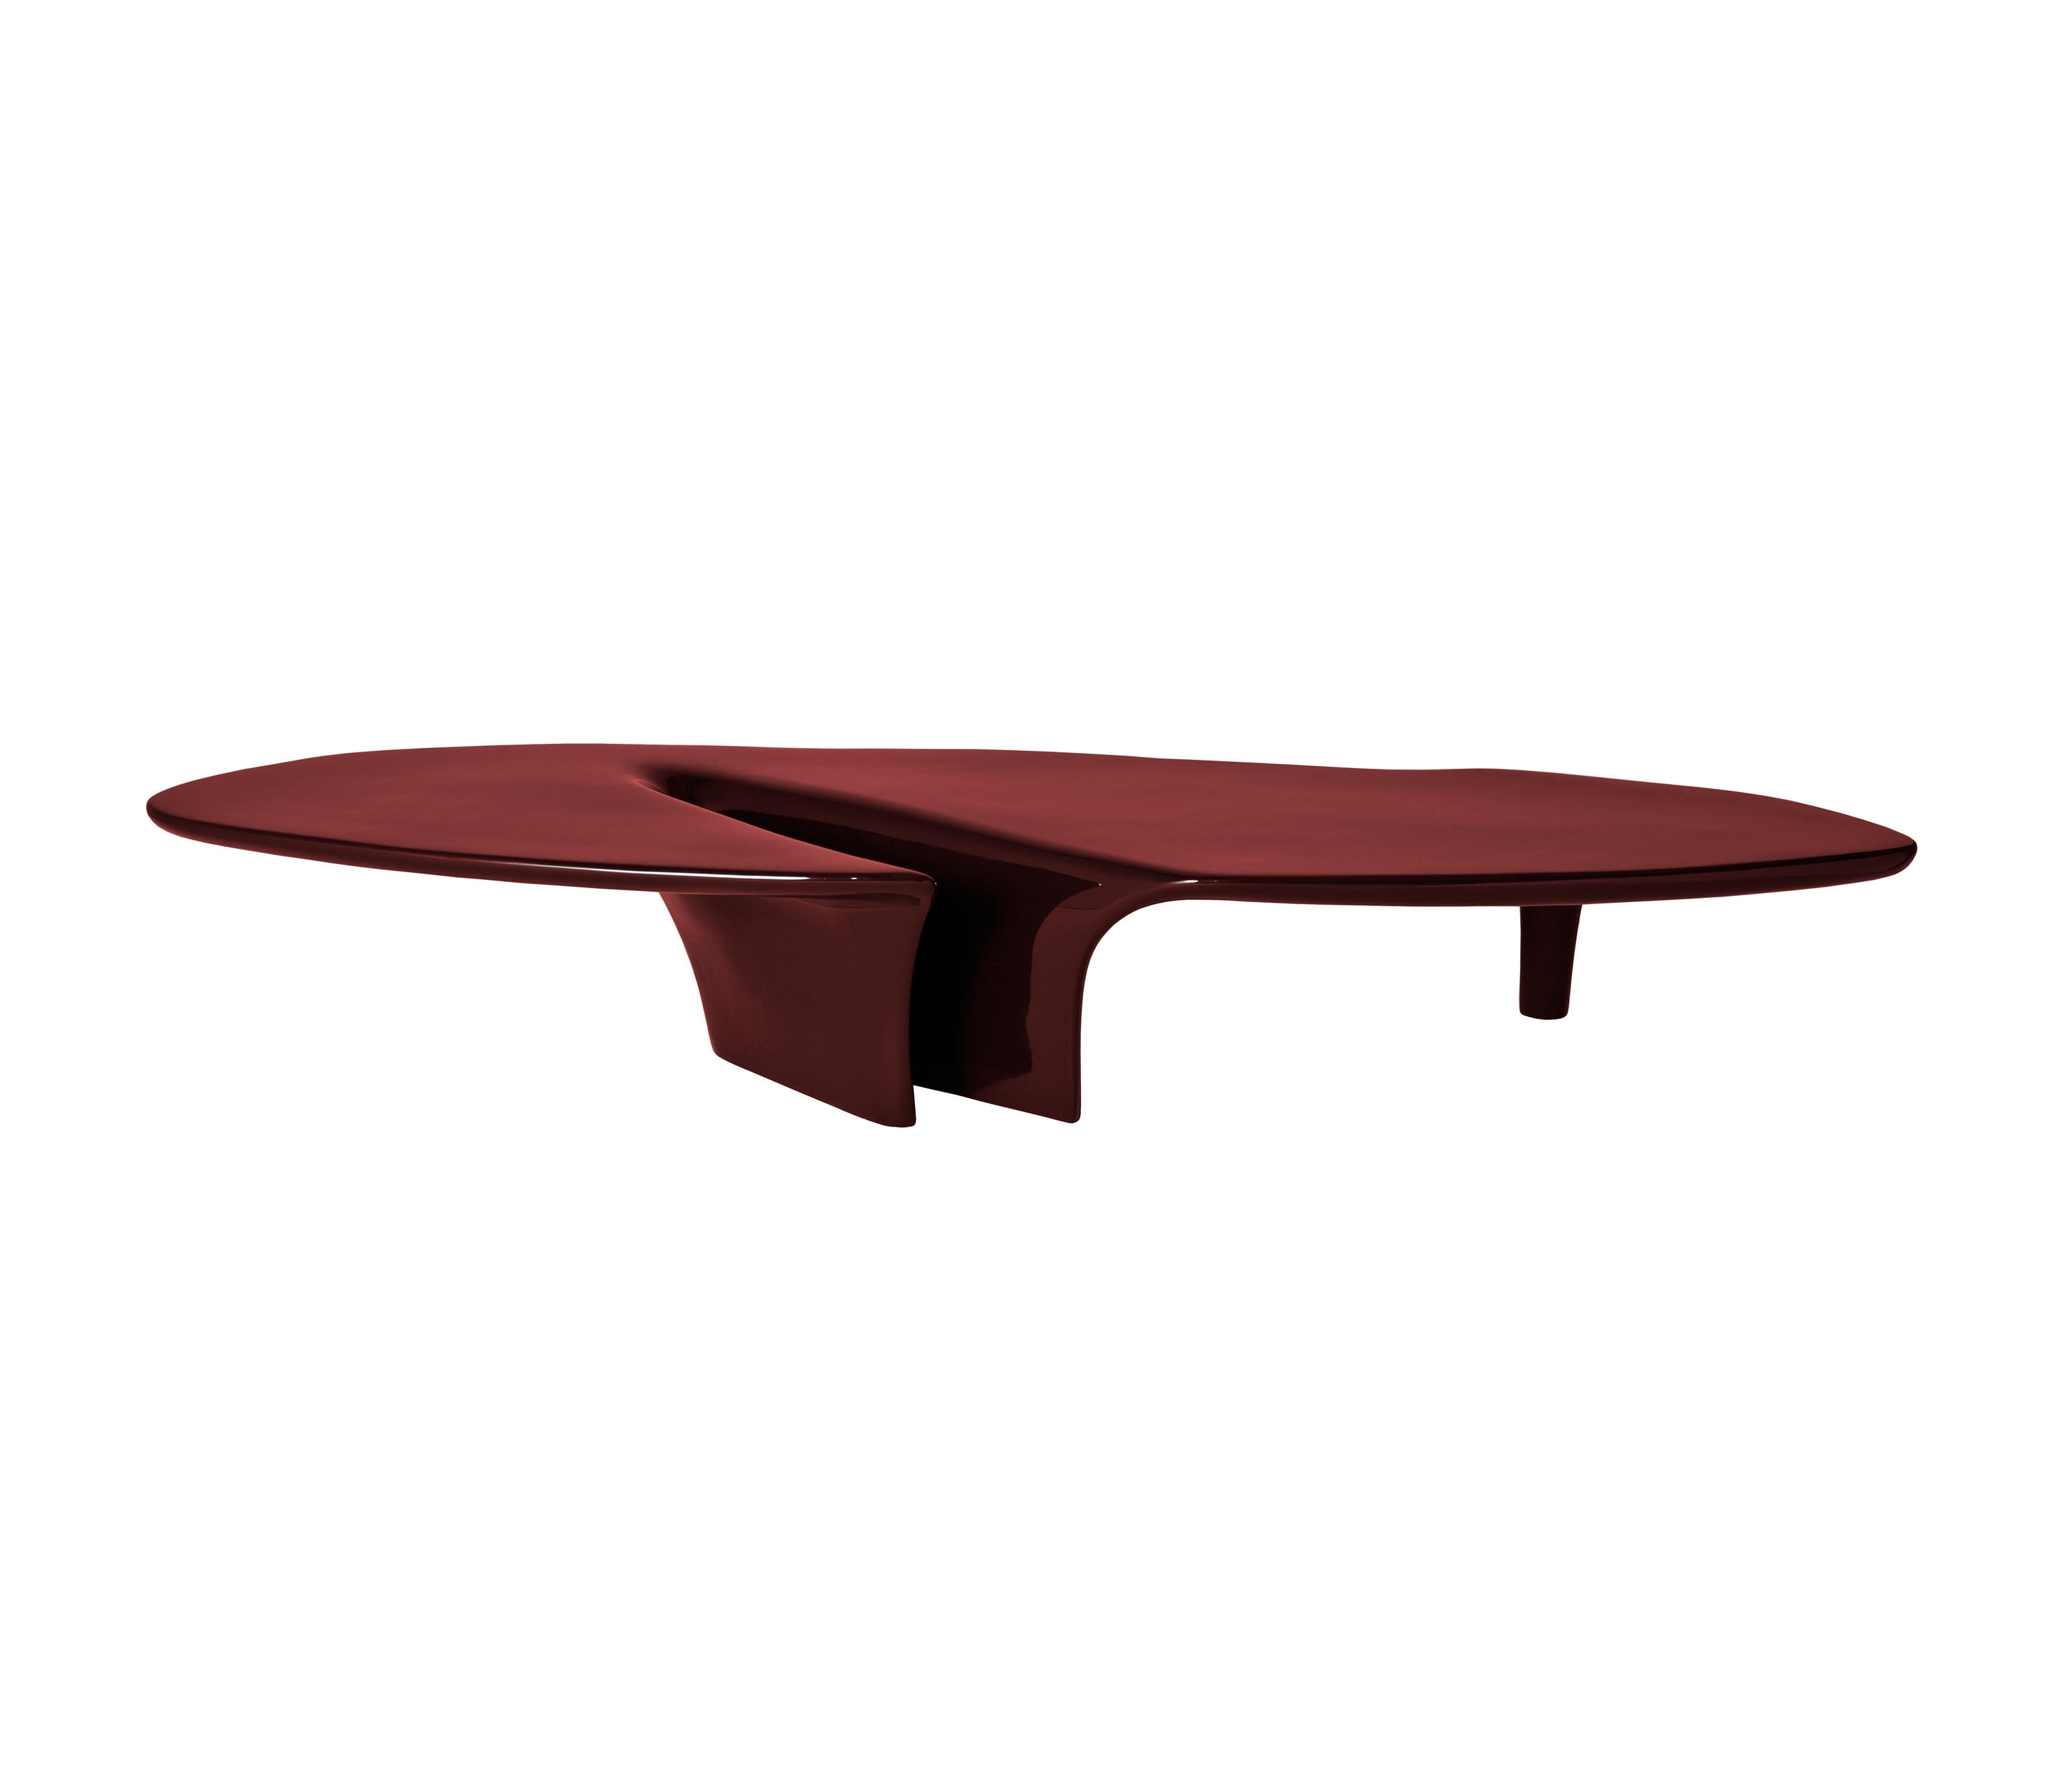 Waterfall Coffee Table - Coffee Tables From Driade | Architonic within Expressionist Coffee Tables (Image 29 of 30)